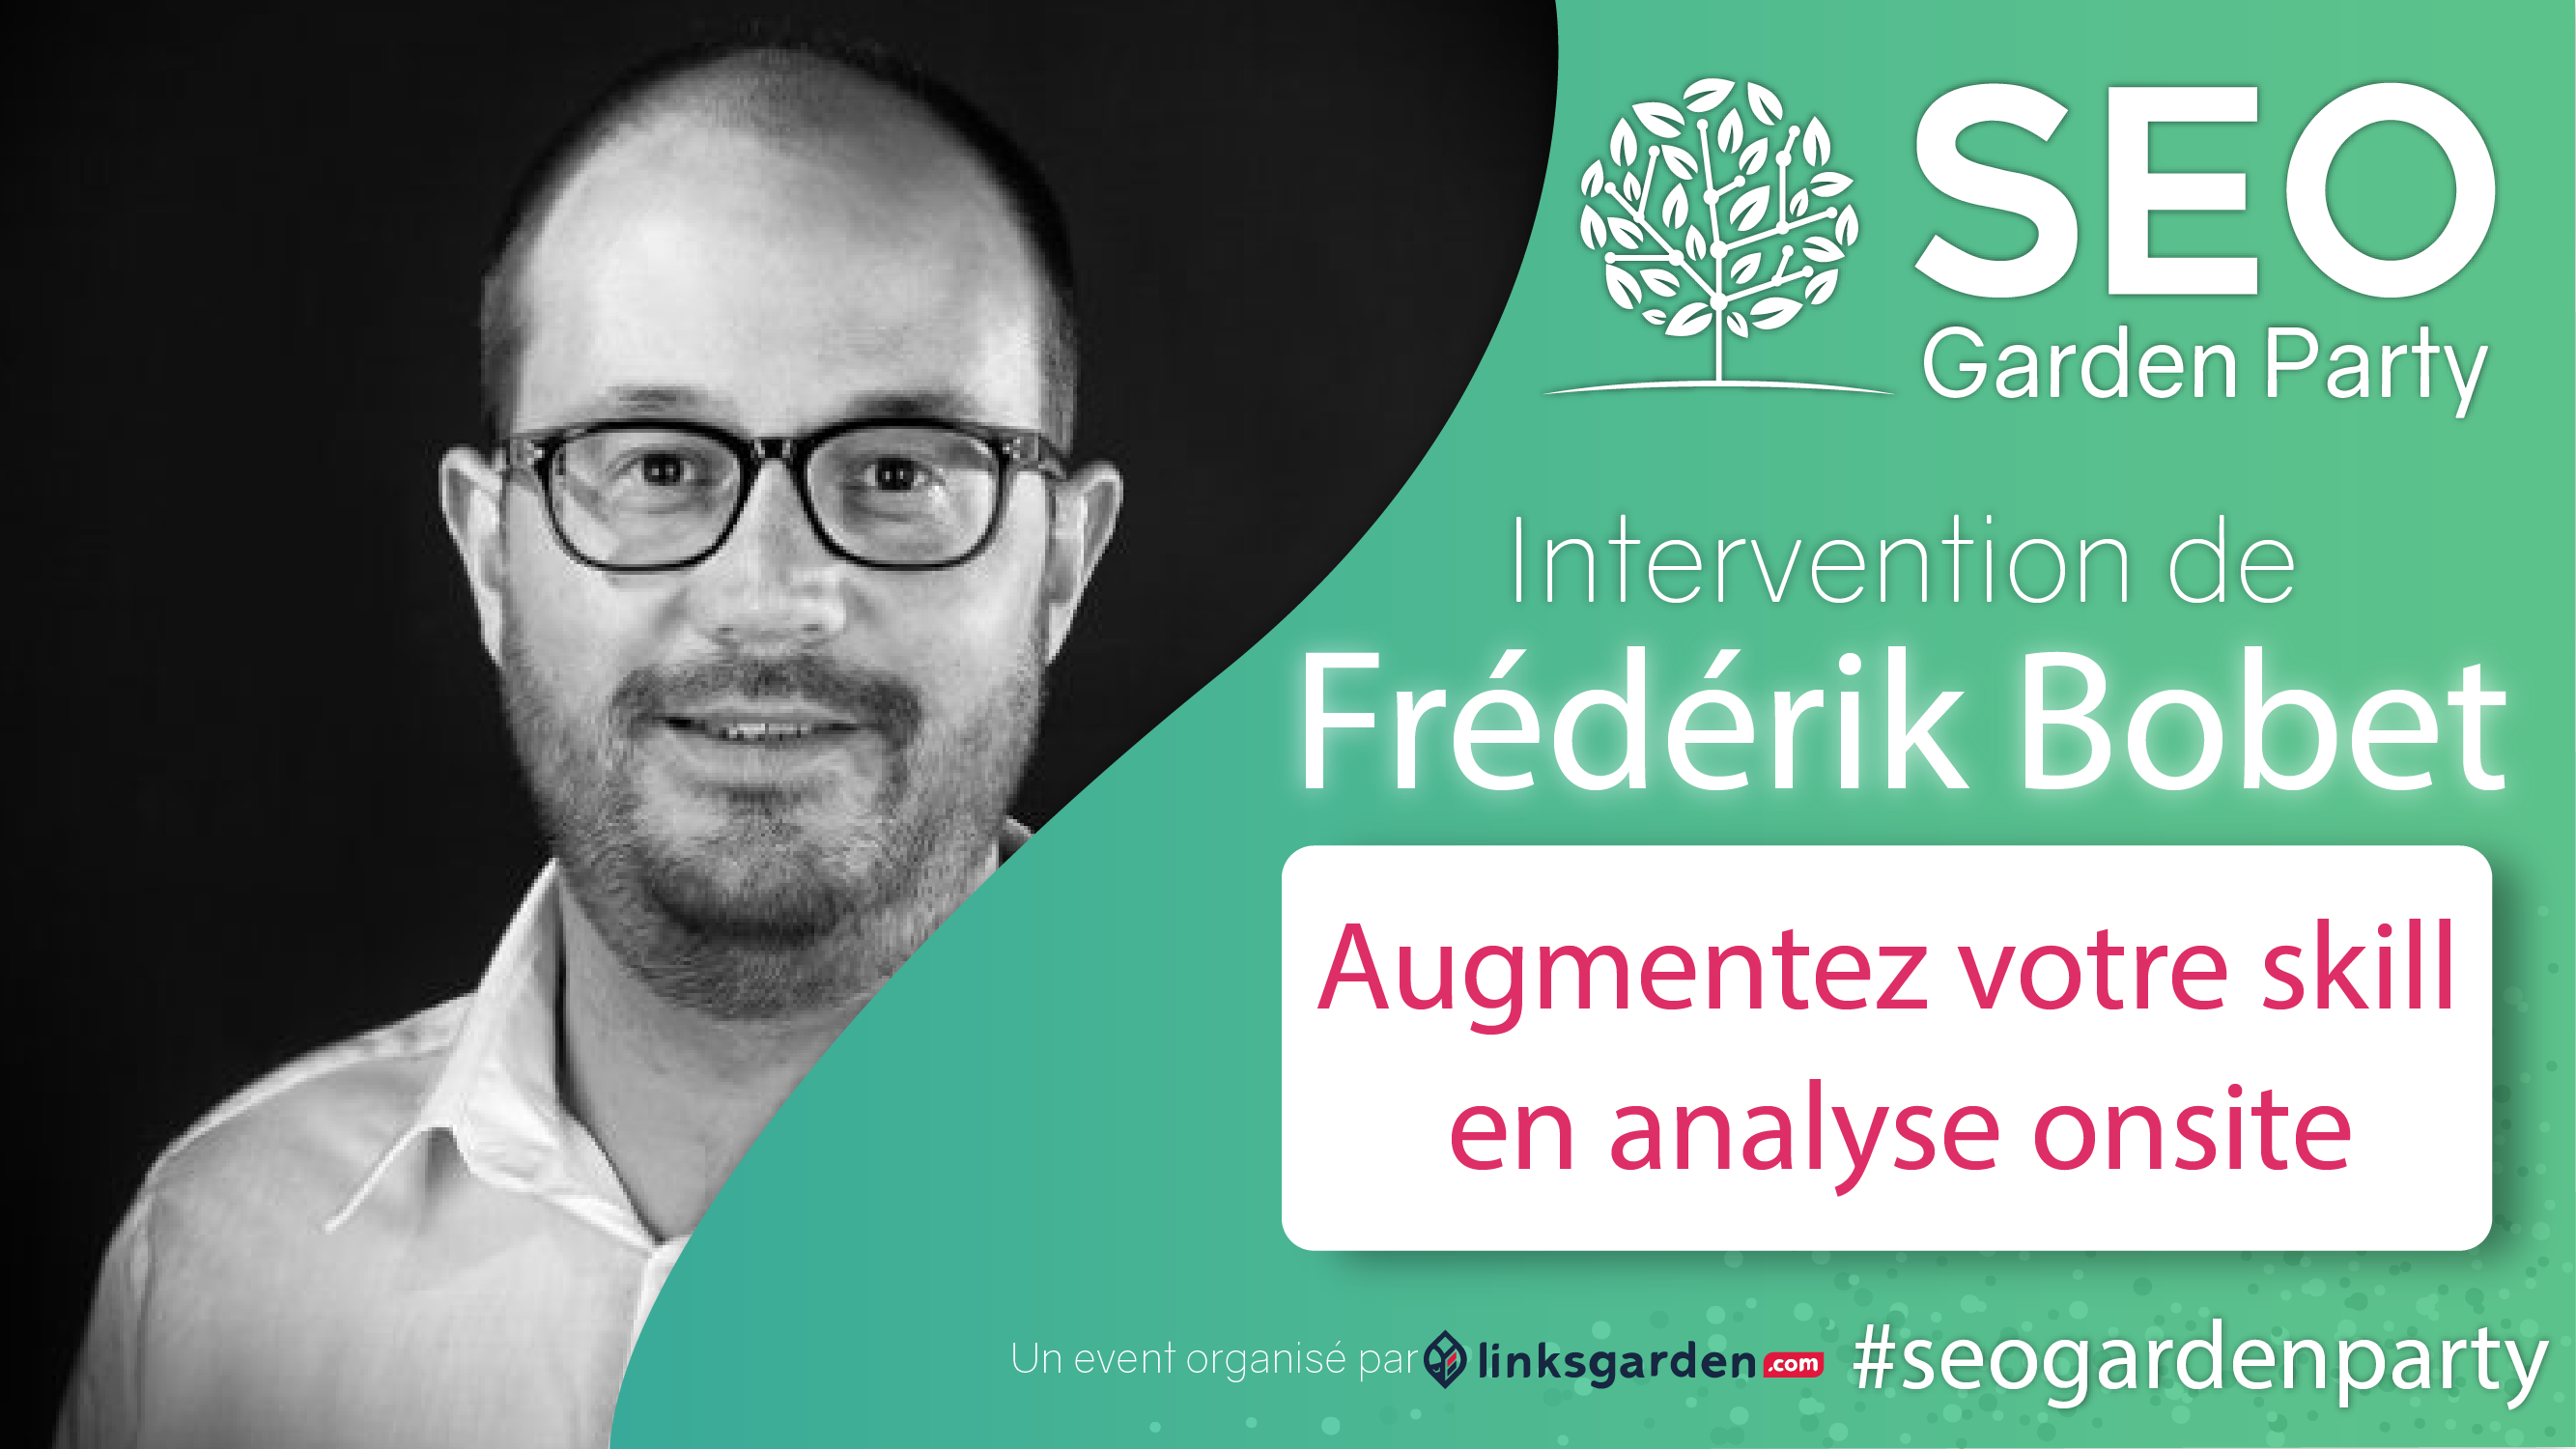 Frederik Bobet SEO Garden Party Novembre 2021 by Linksgarden